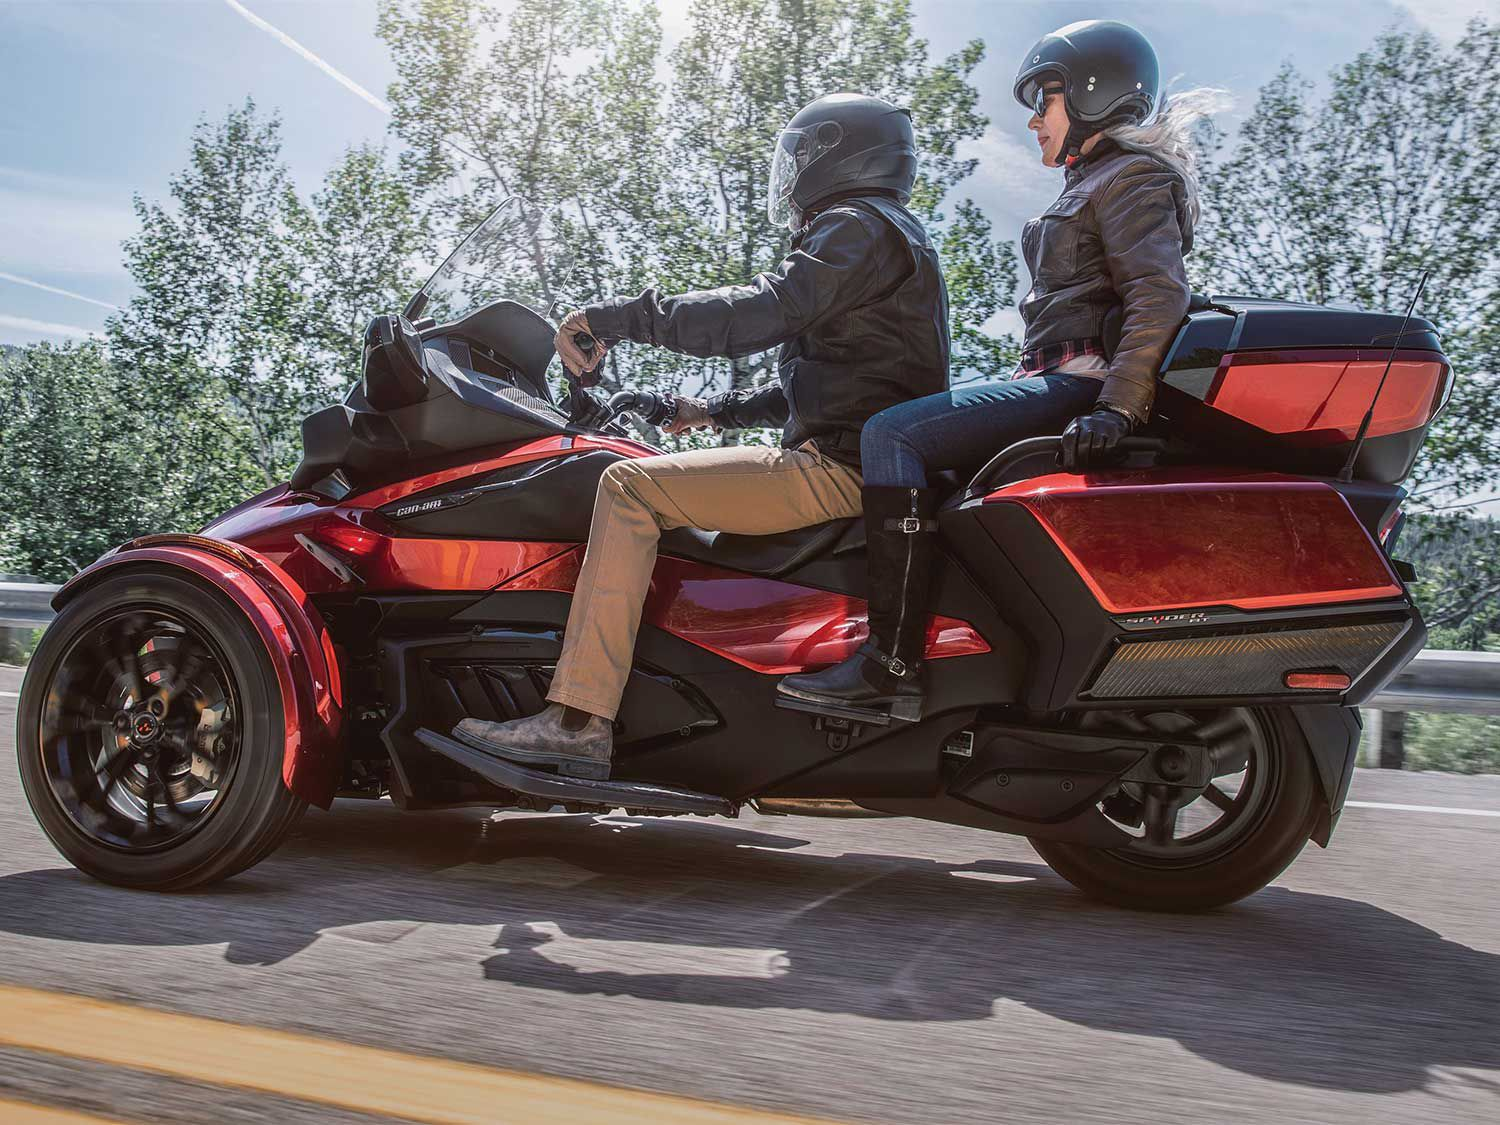 The RT Limited offers up to 47 gallons of luggage capacity.